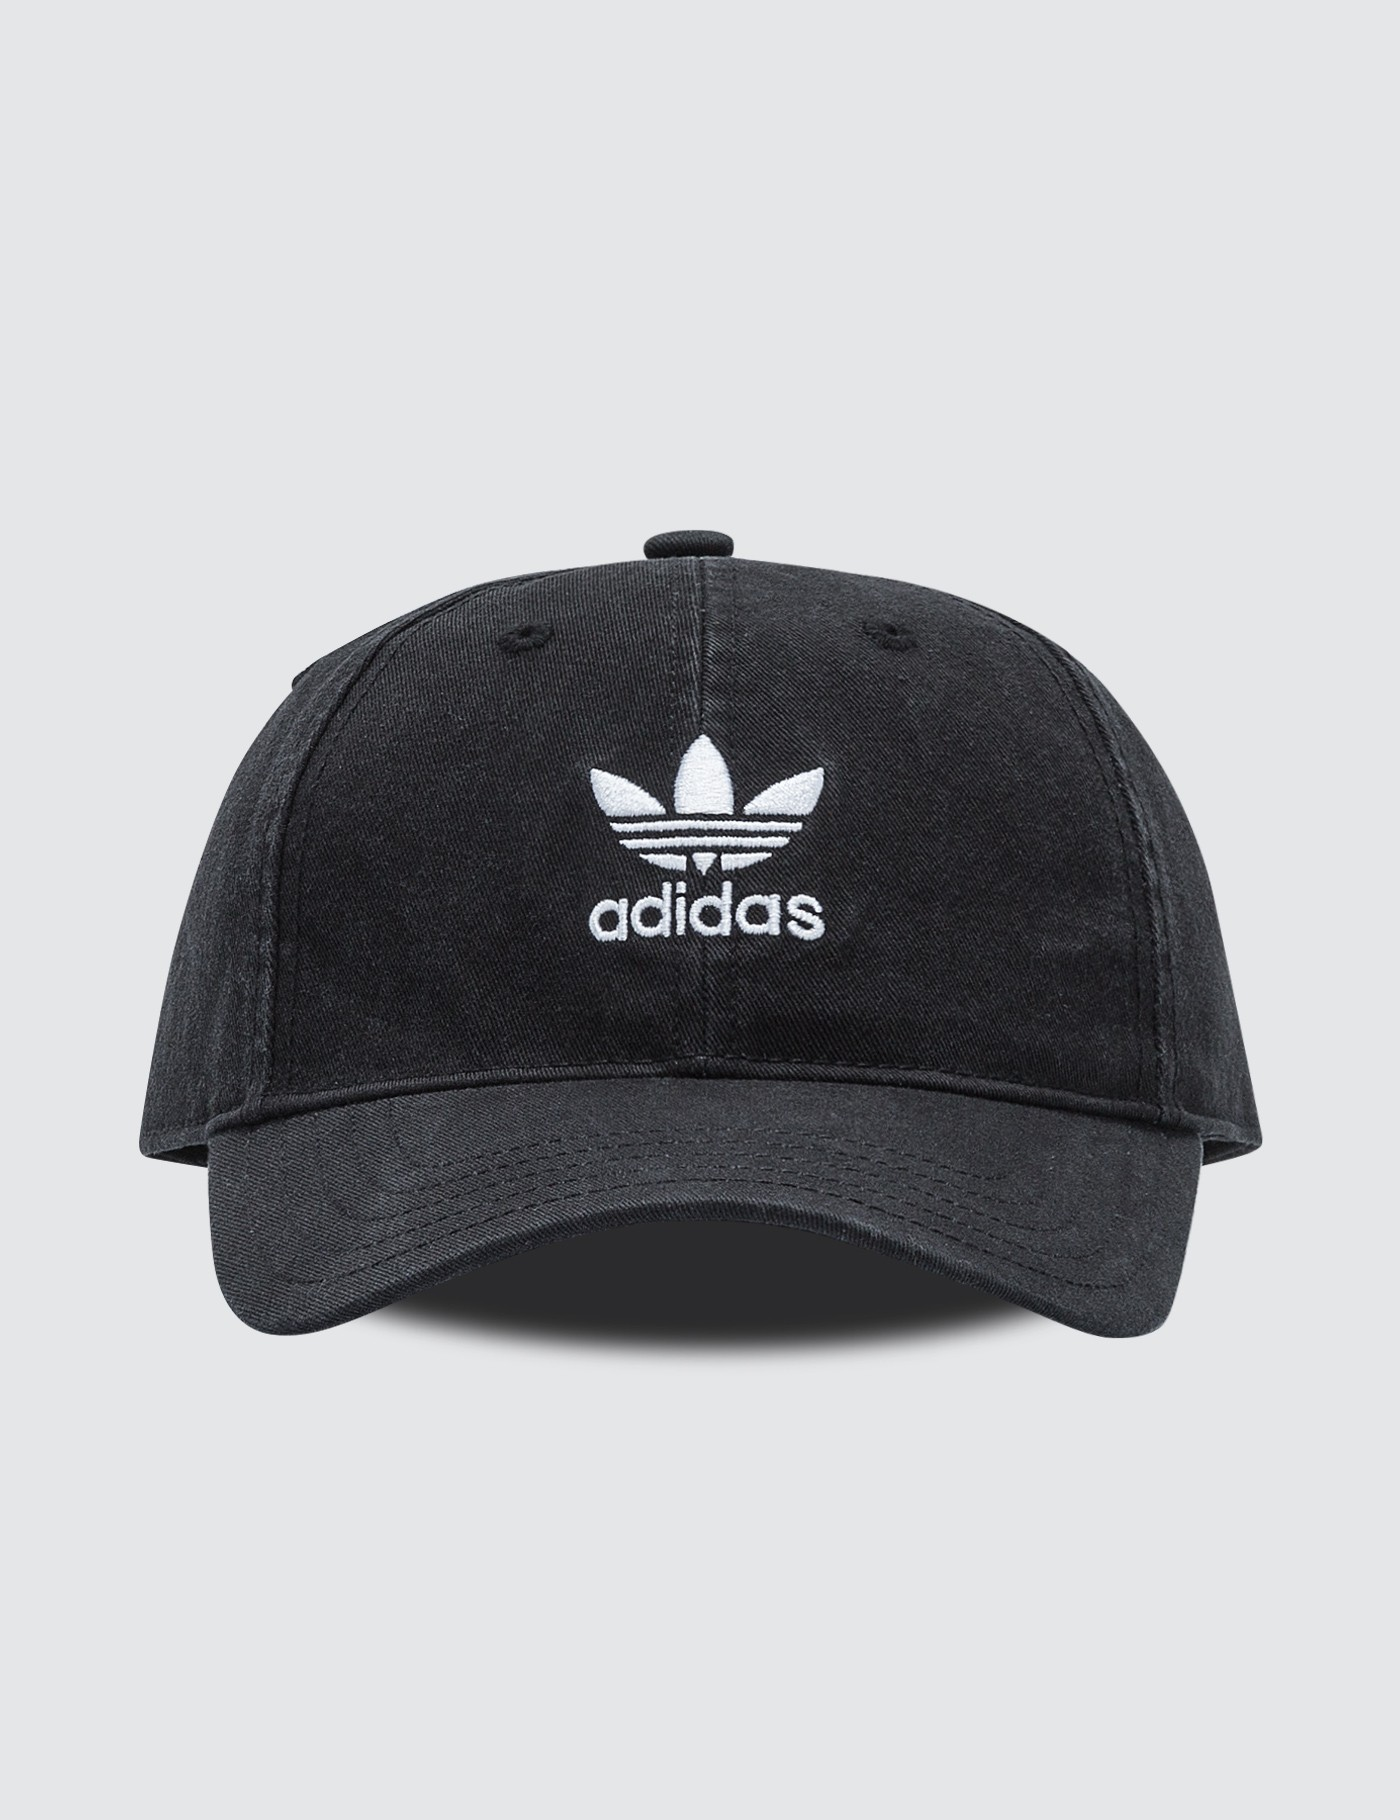 Adidas Originals Adicolor Washed Cap